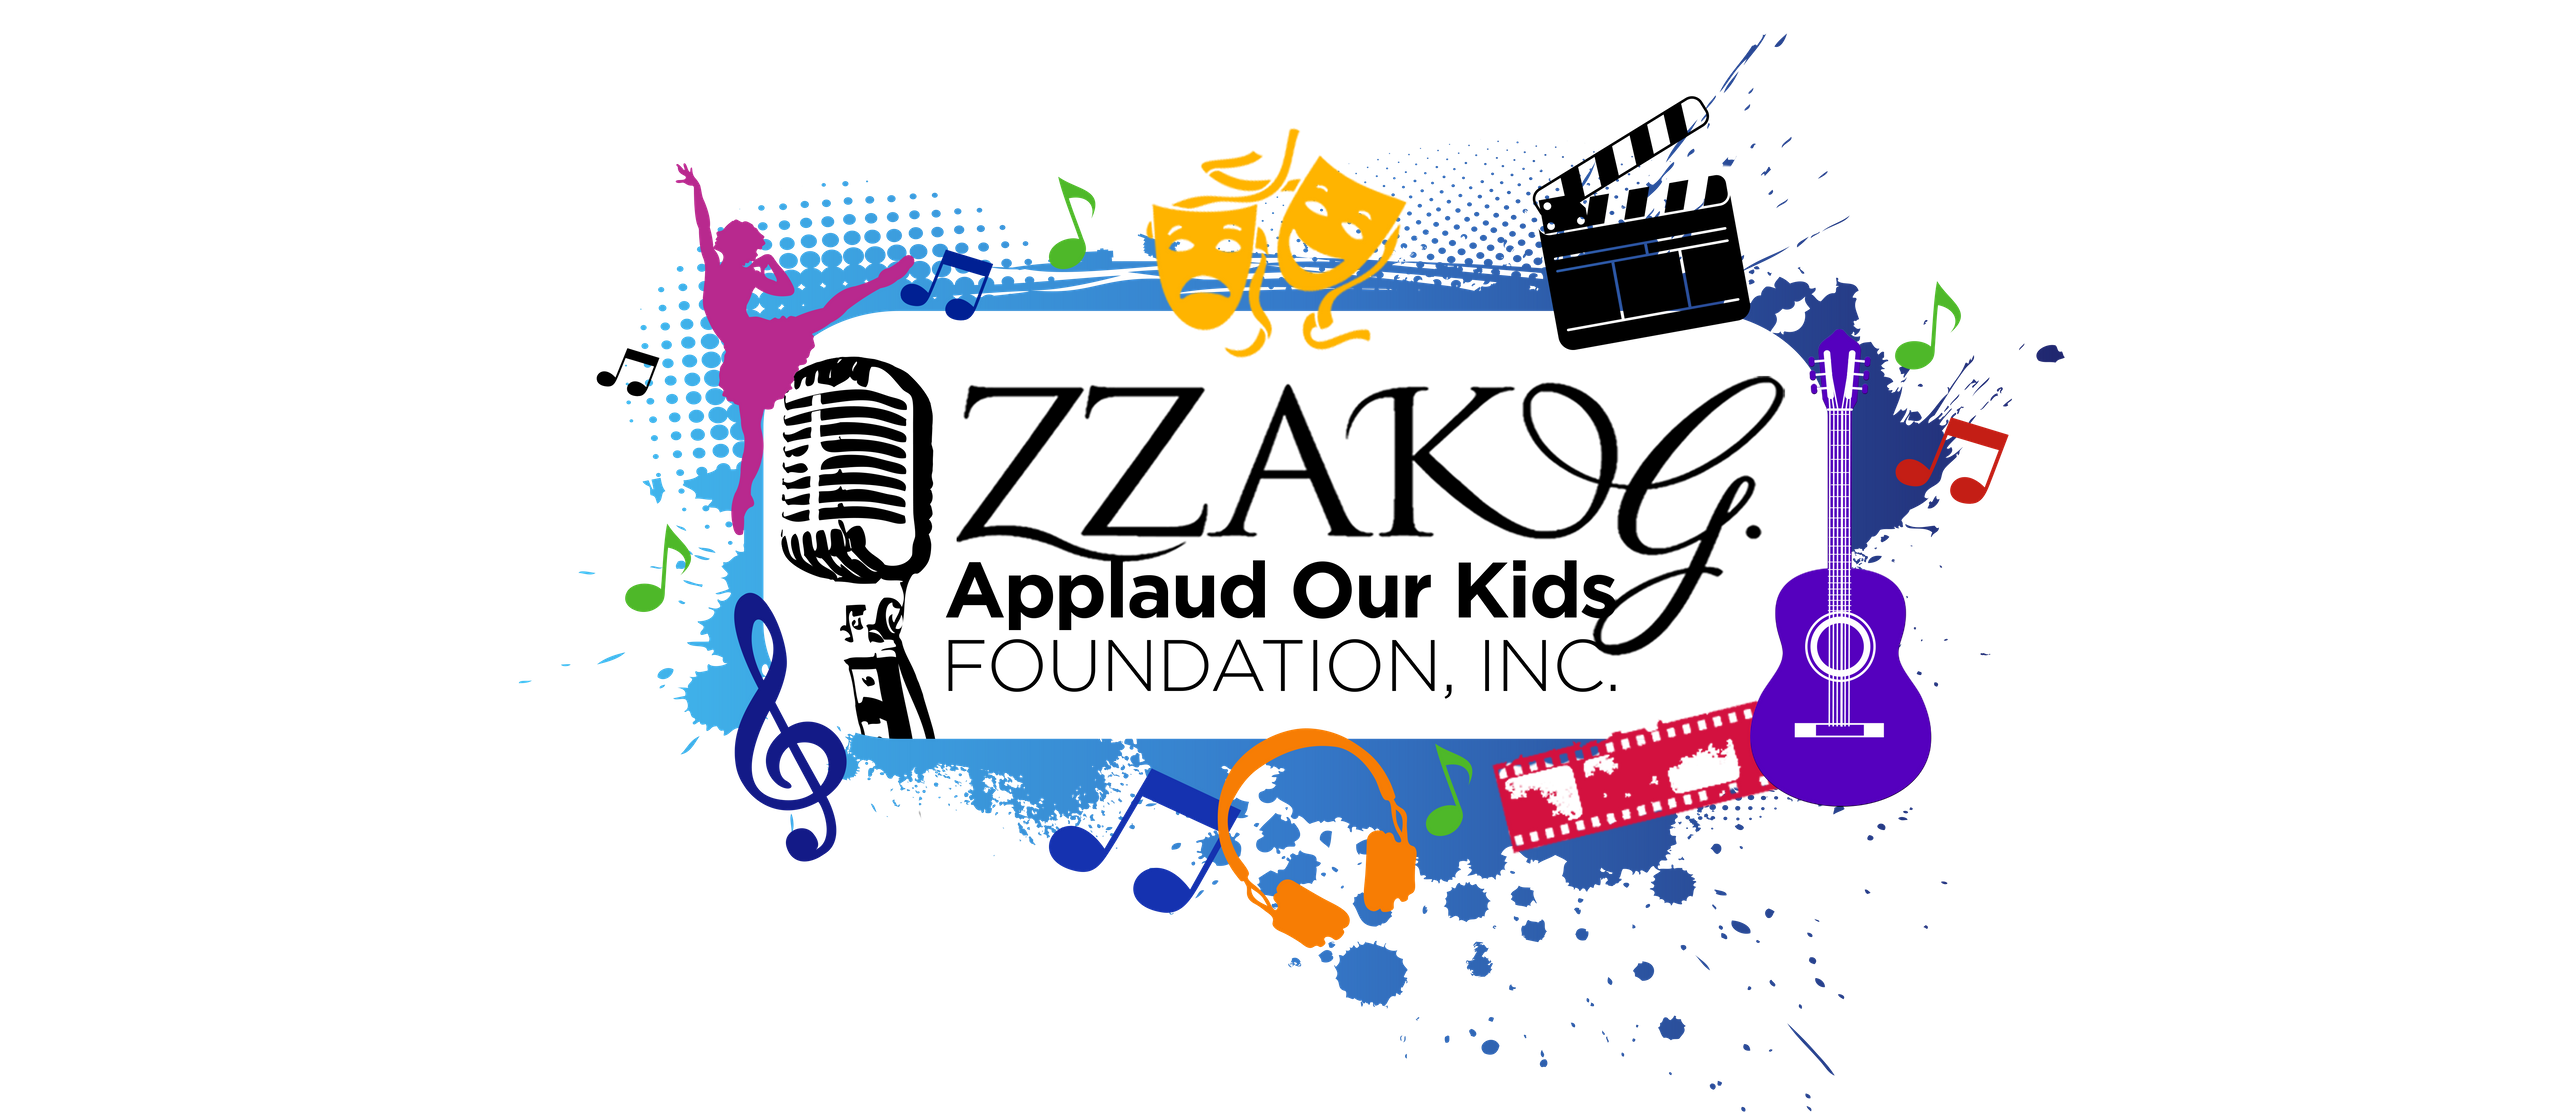 Arts scholarship concert clipart clipart black and white stock Scholarship Information | Zzak G. Applaud Our Kids Foundation Inc clipart black and white stock